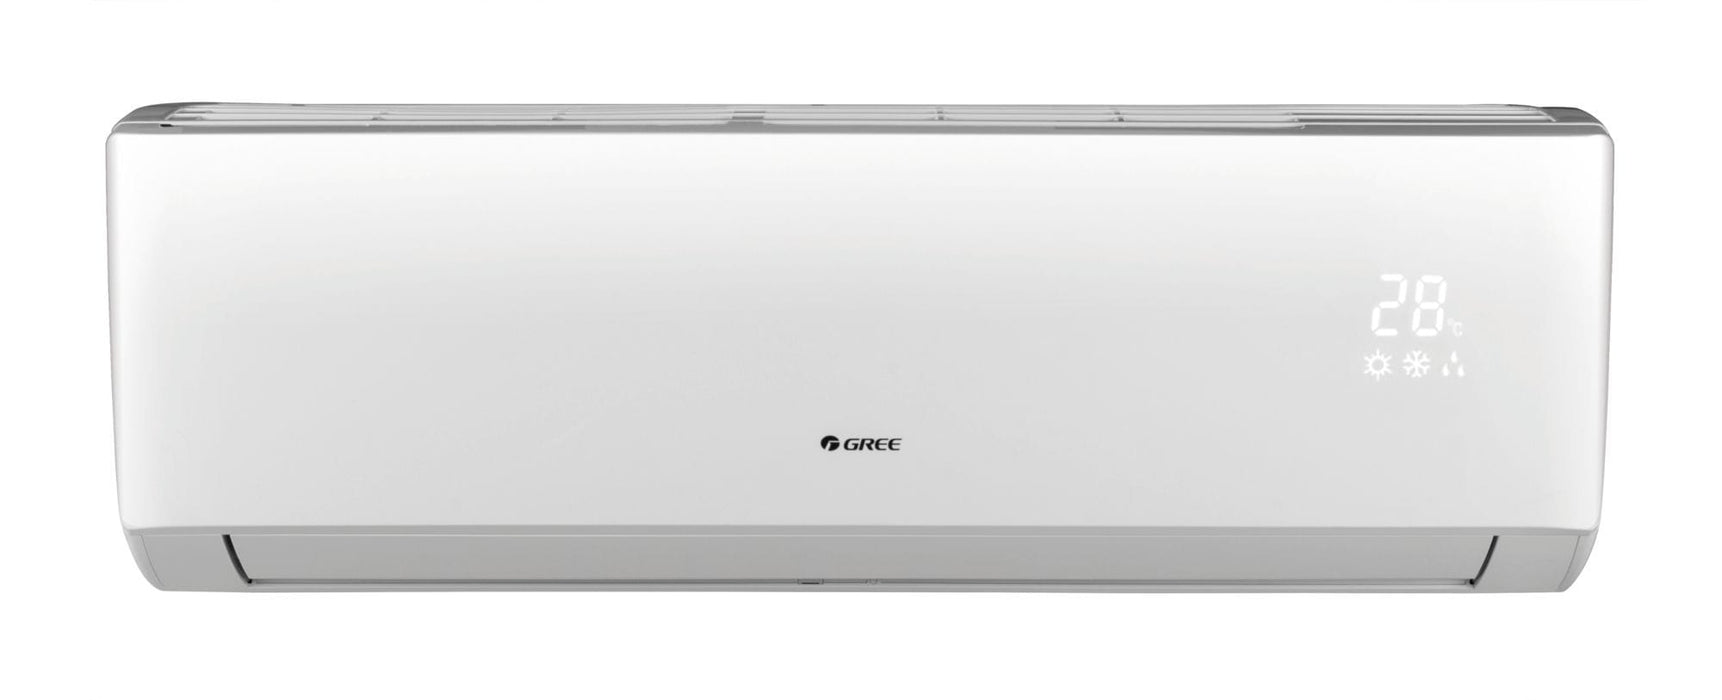 Gree 12,000 BTU 16 SEER LIVO+ Wall Mount Ductless Mini Split Indoor Unit 208-230V